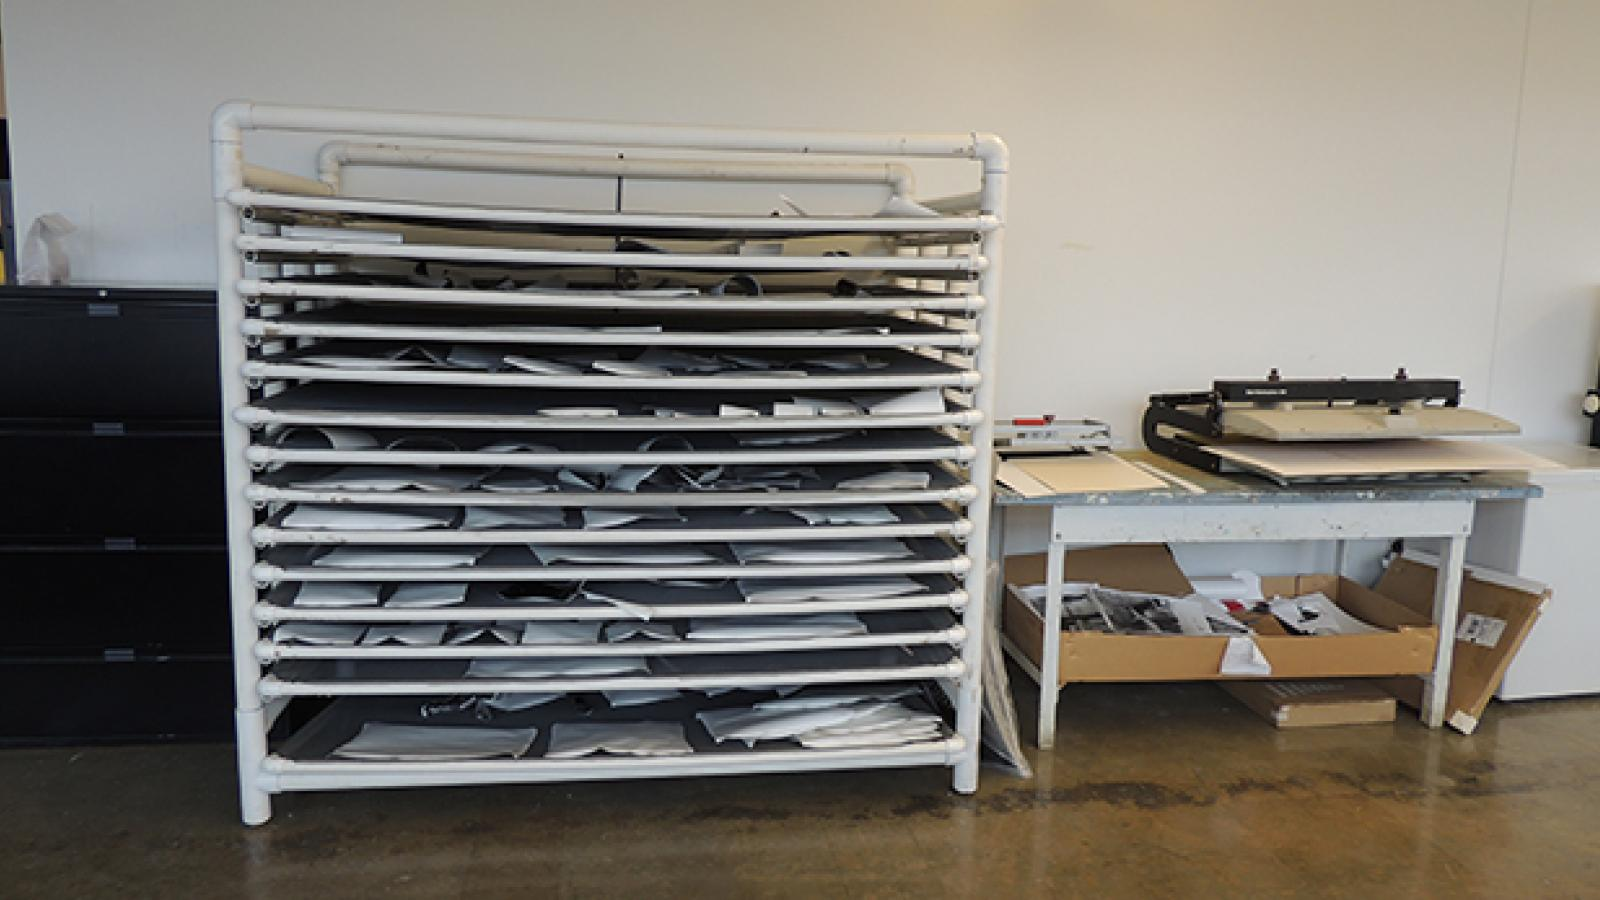 Photo drying racks in studio